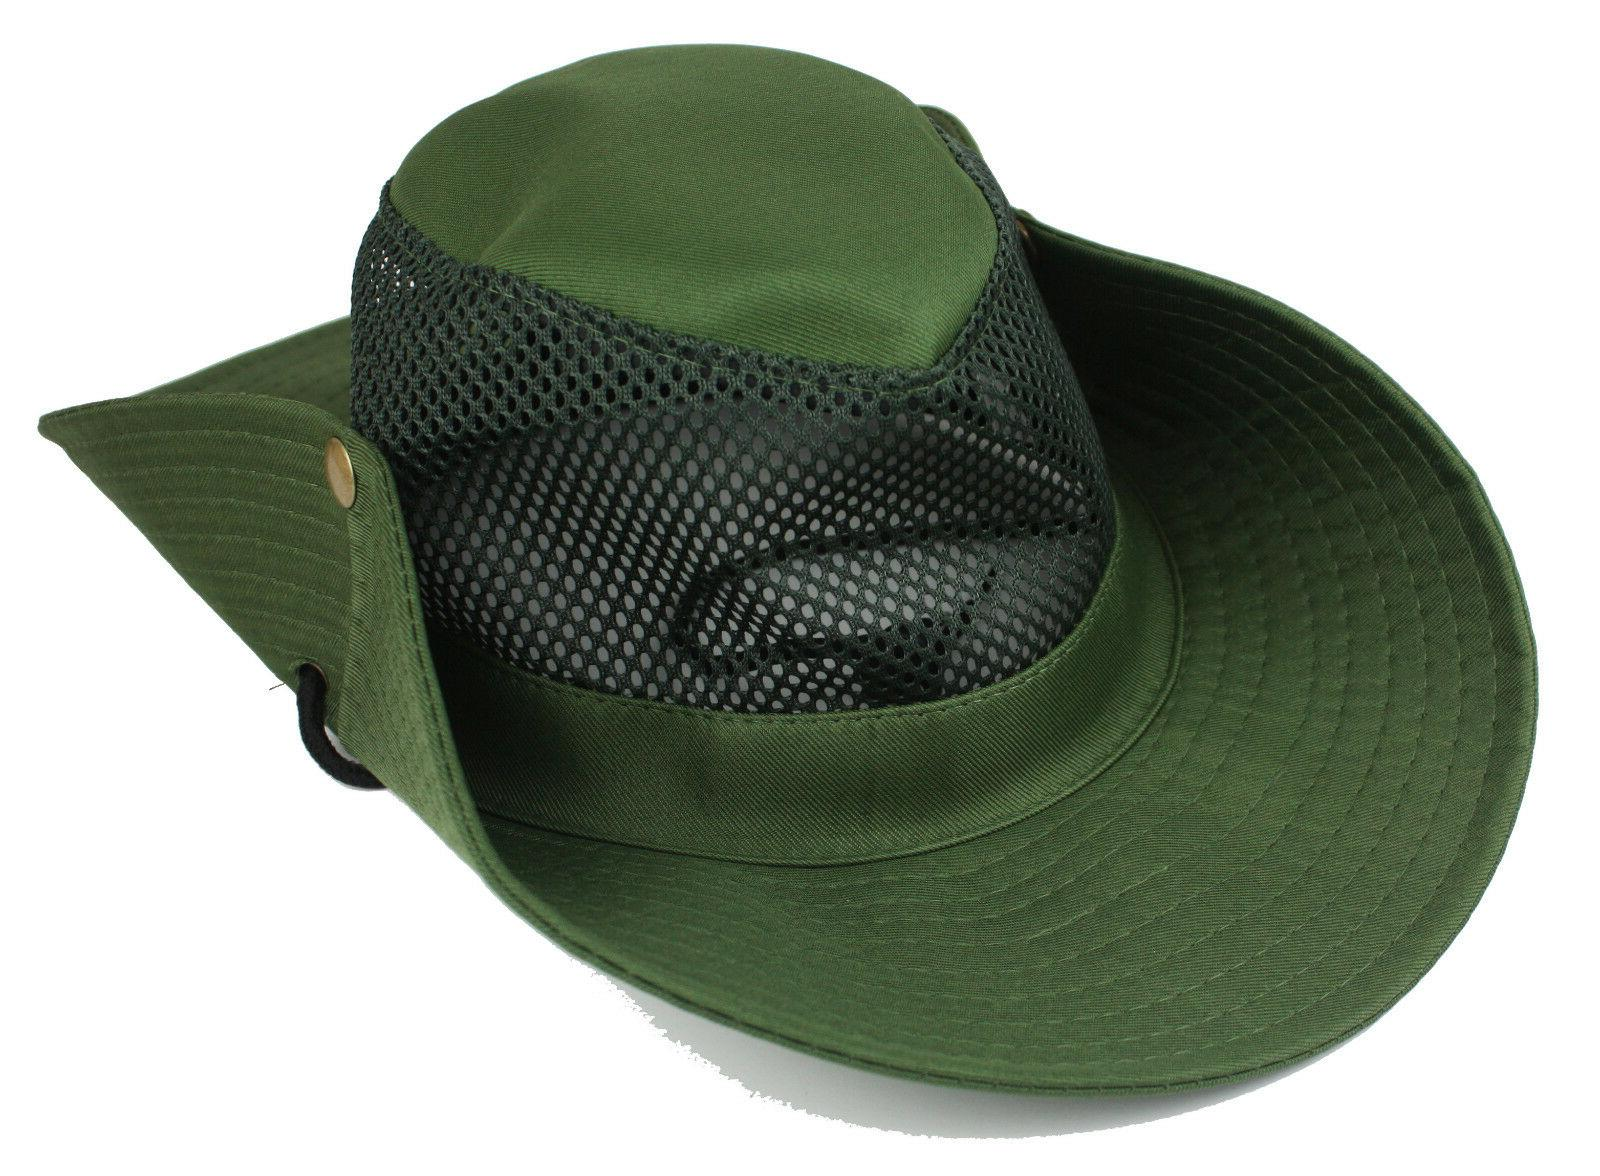 Cool Brim Solid Boonie Hunting Hiking Outdoor